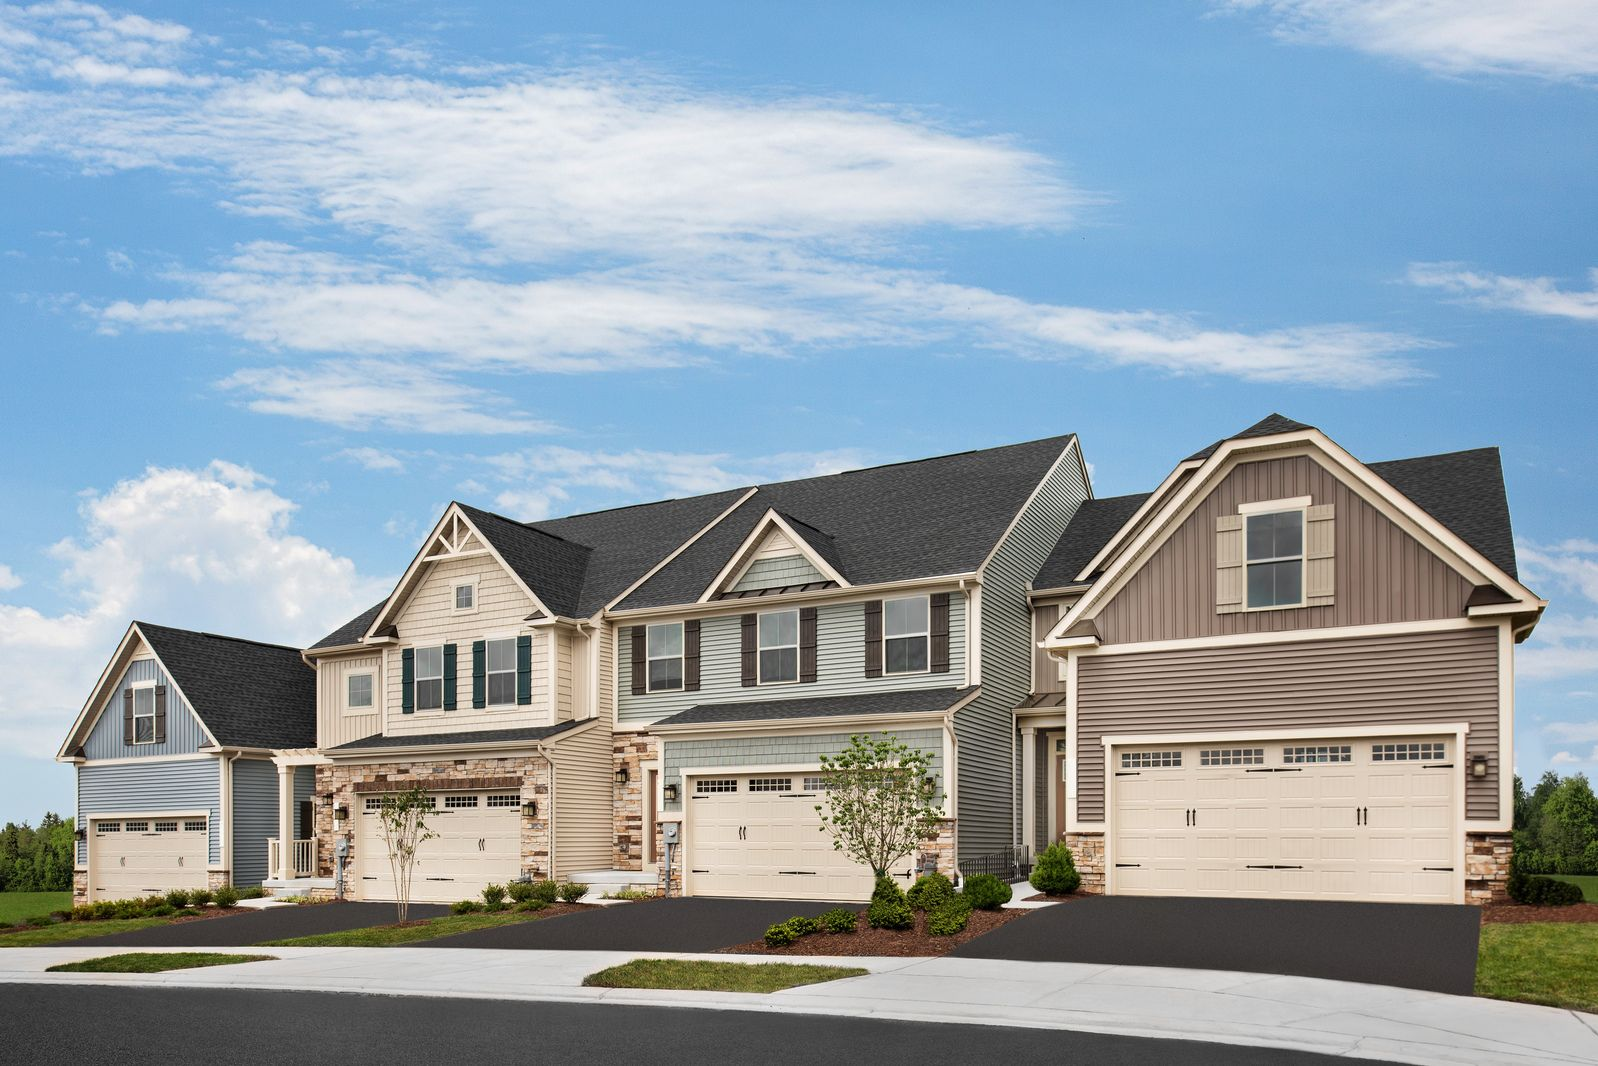 WELCOME TO HARRINGTON TERRACE VILLAS IN FREDERICK, MD:Enjoy Villas with Basements featuring 1st Floor Owner's Suites. 5 minutes to Downtown Frederick, 2 minutes to I-70 & I-270. From the upper $400s.Schedule an appointment today!